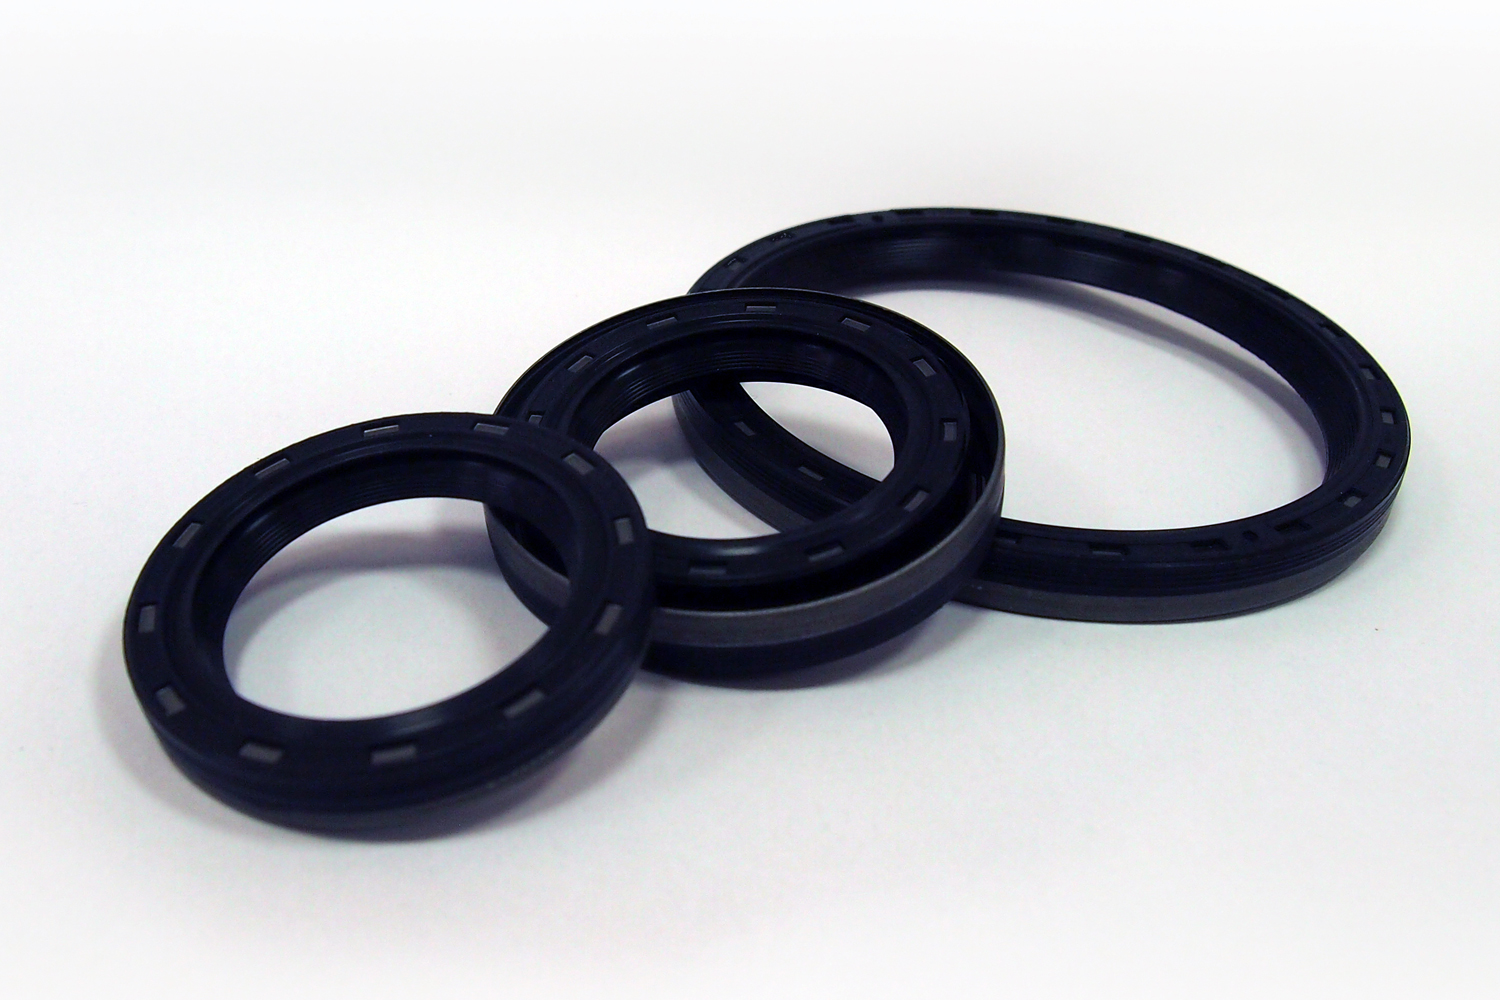 Three o-rings laying on a table for visual inspection purposes